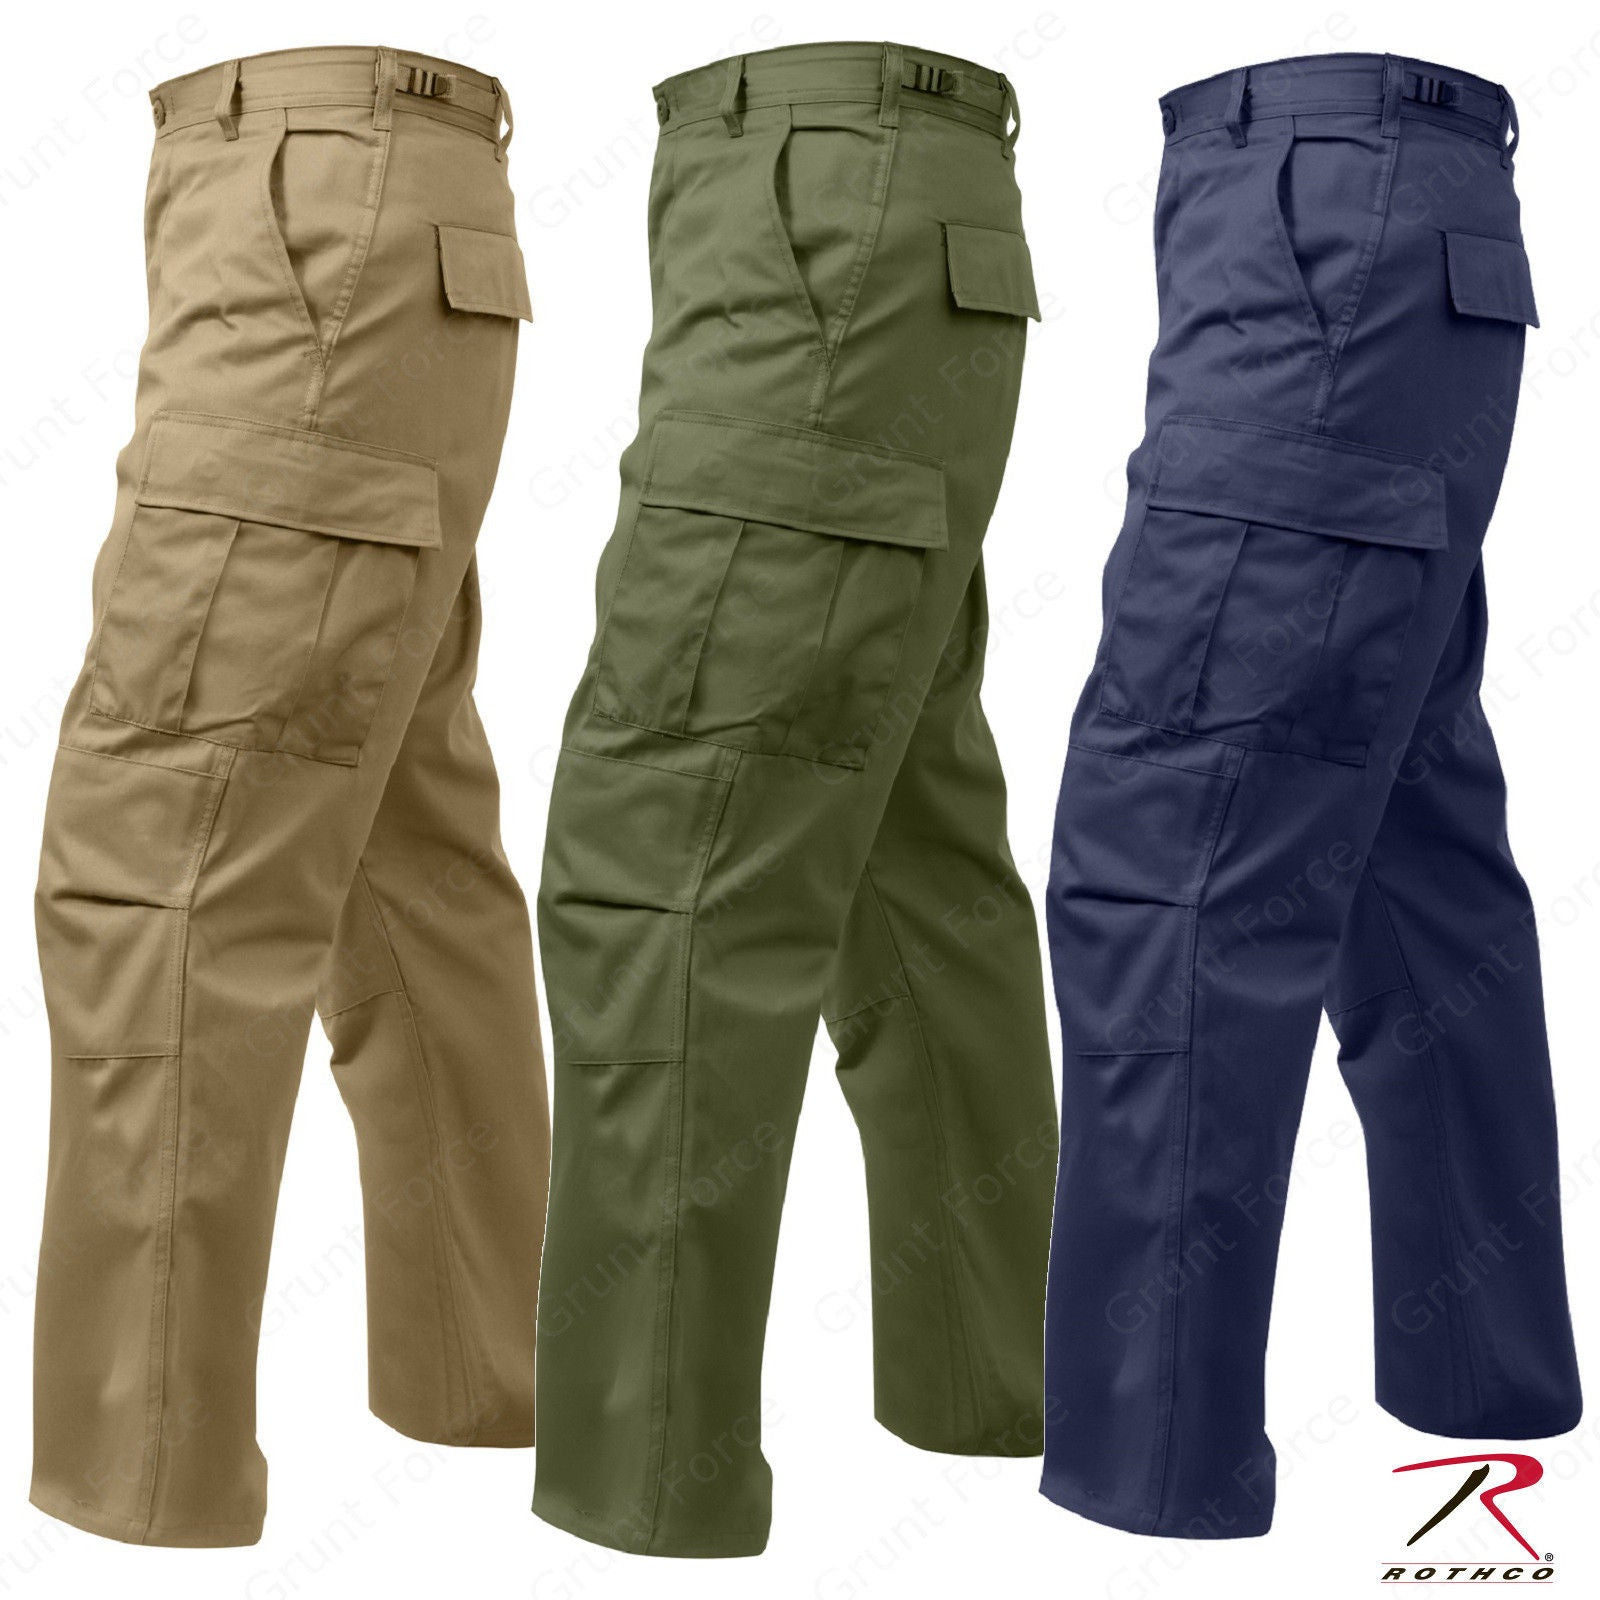 Rothco Relaxed Fit Zipper Fly BDU Cargo Pants - Olive Drab or Khaki or –  Grunt Force 8faf734b4aa